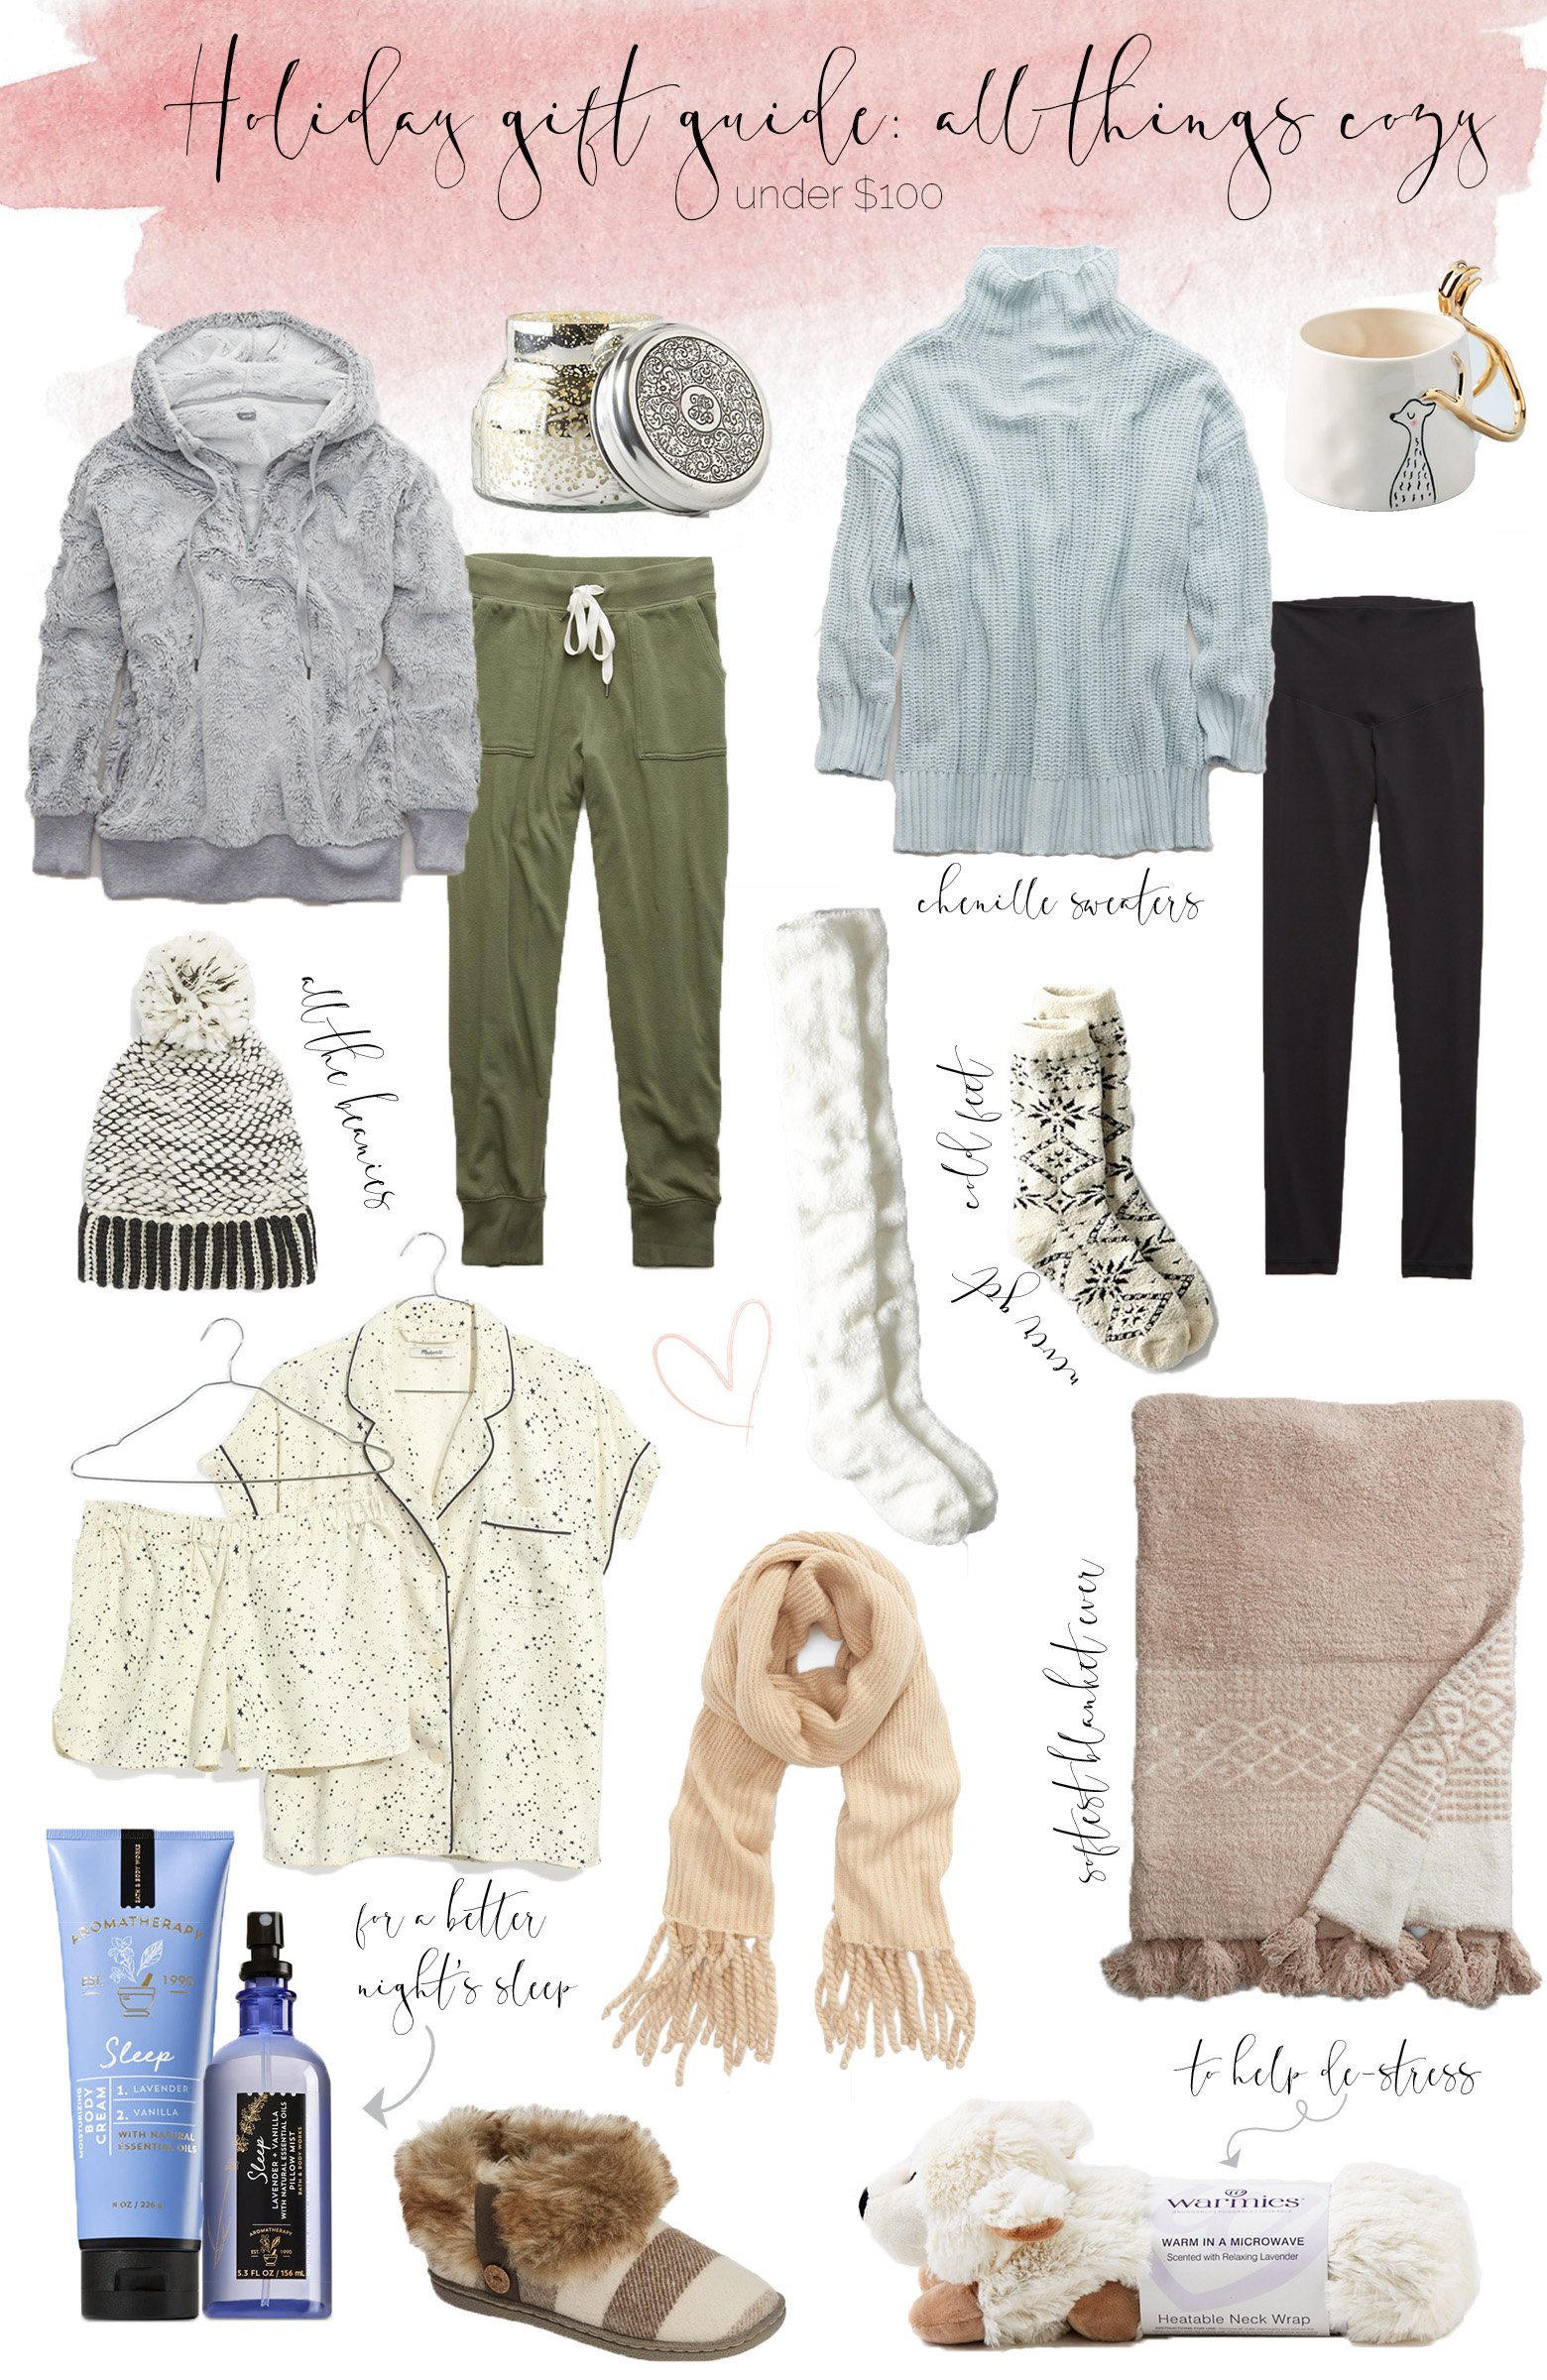 Holiday gift guide all things cozy